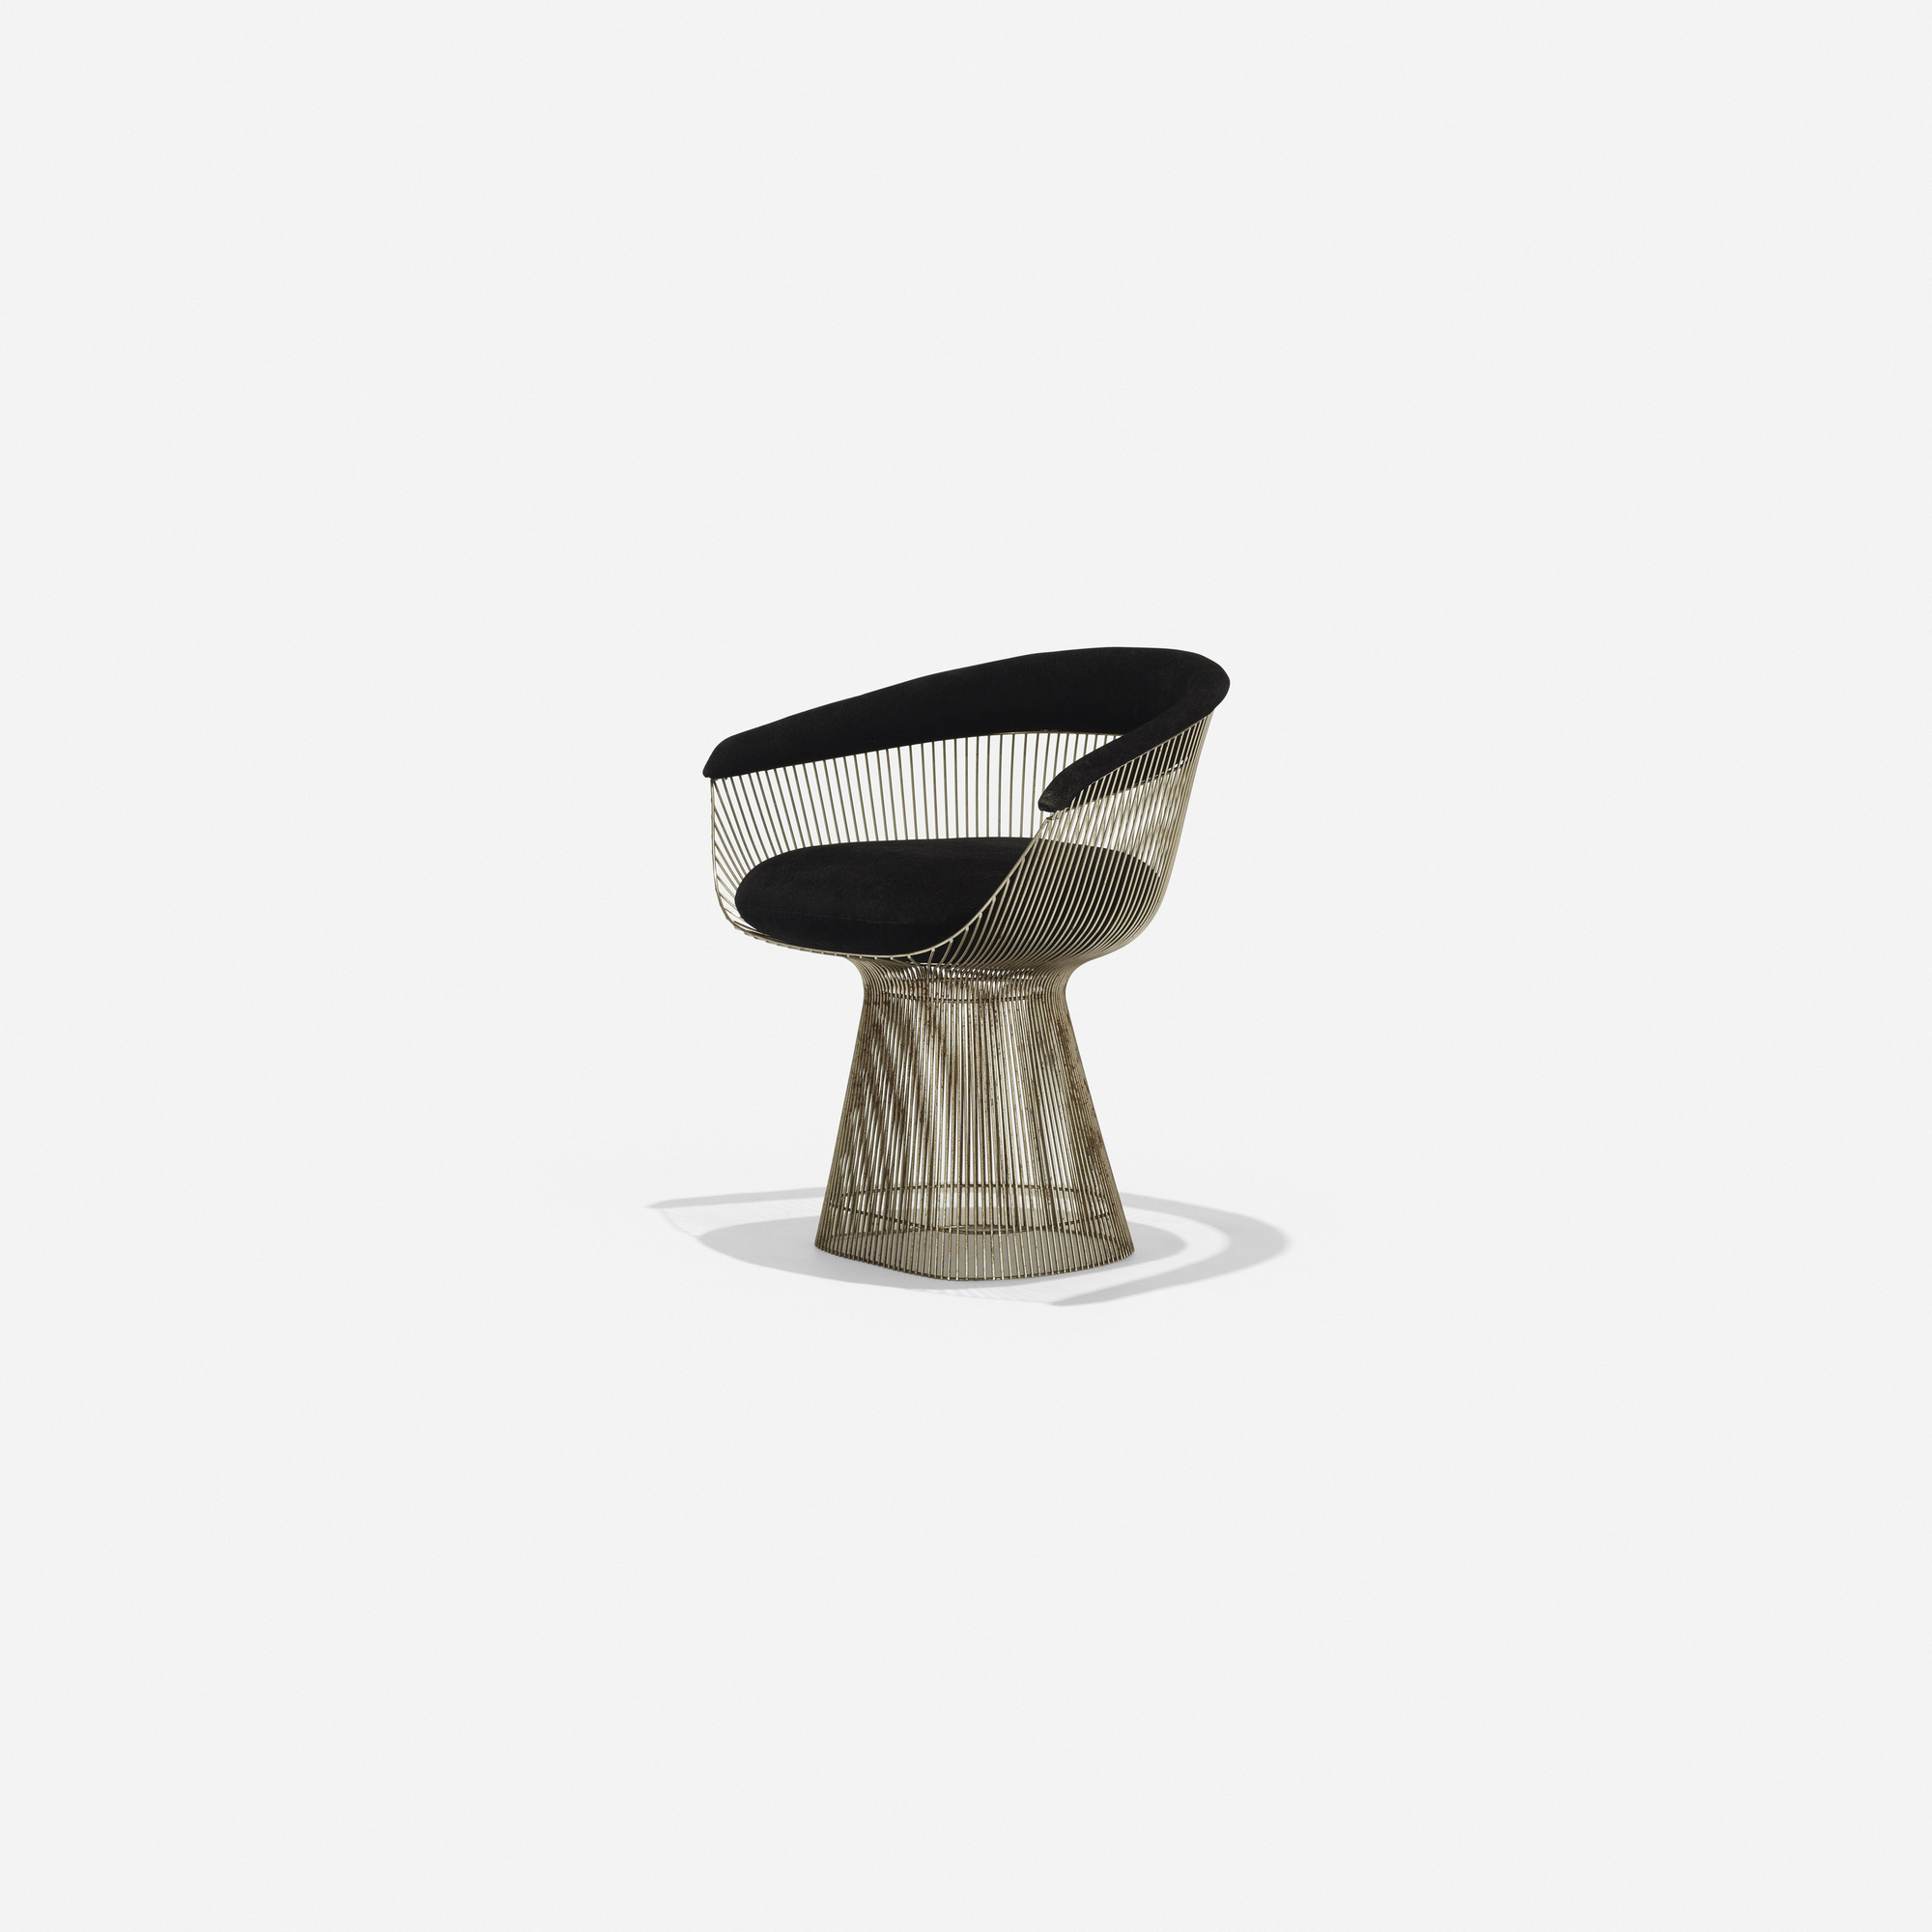 163 Warren Platner chair Taxonomy of Design Selections from